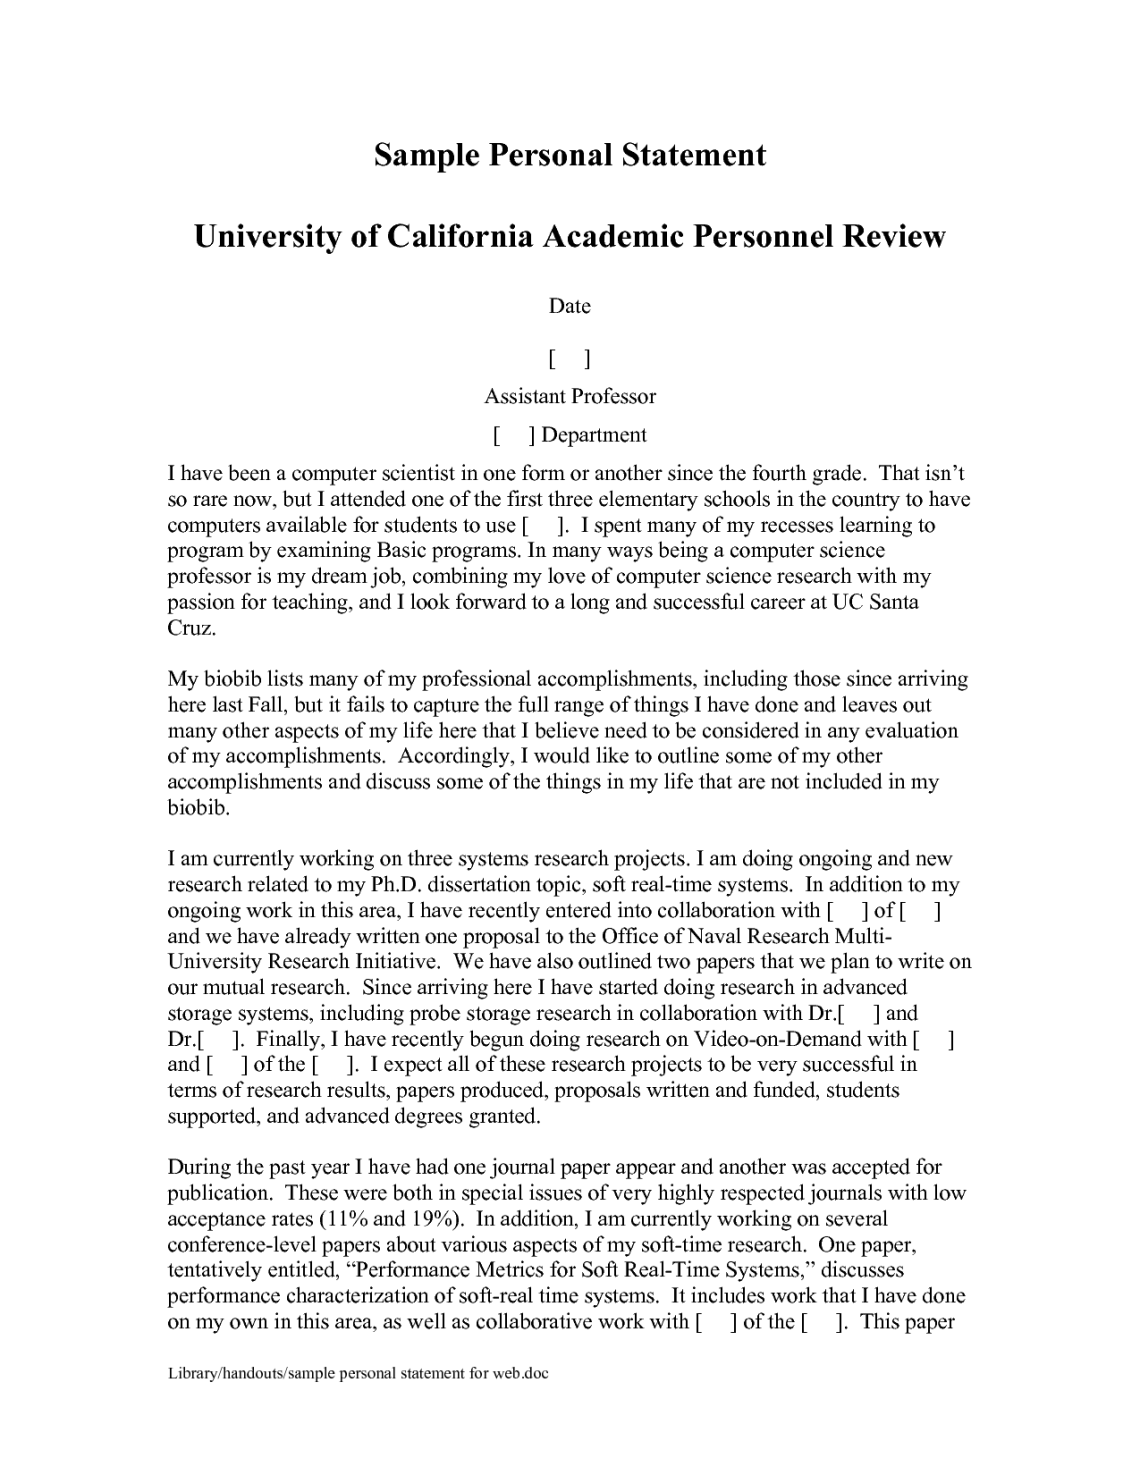 Sample Law School Resume Steps To Writing The Perfect Research Paperi'm Joel Spolsky A